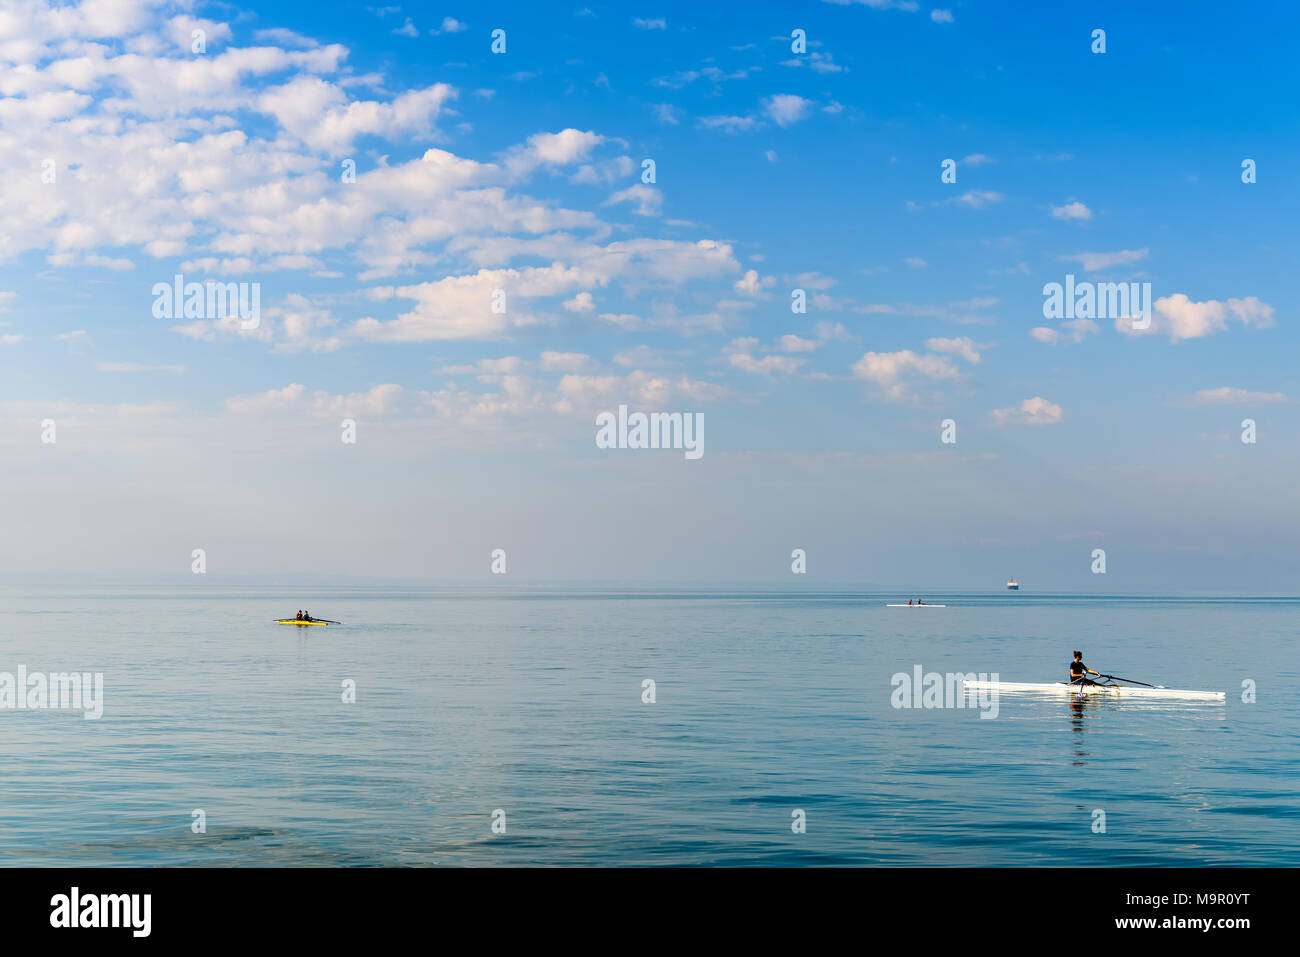 Thessaloniki, Greece - April 15, 2017: Rowers training early in the morning onto the calm waters of Aegean Sea, Thermaic Gulf - Stock Image